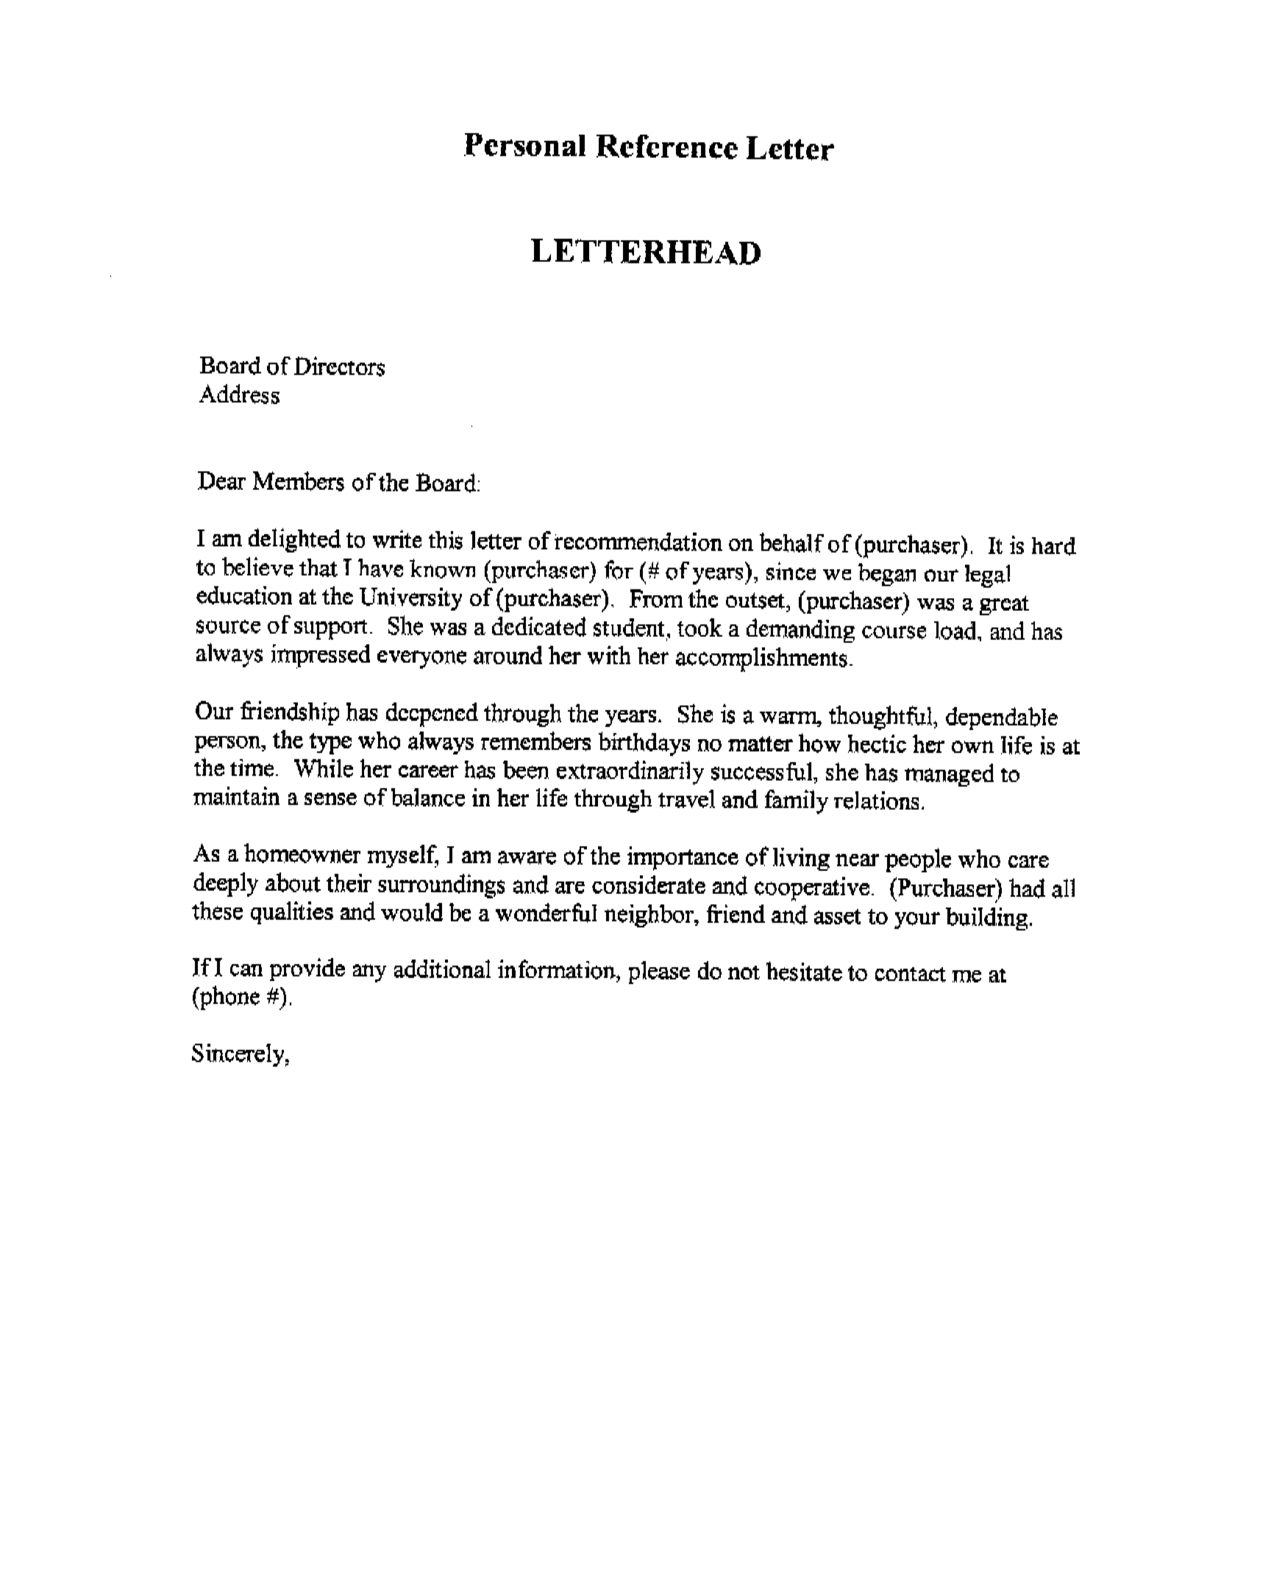 recommendation letter a letter of recommendation is a letter in recommendation letter a letter of recommendation is a letter in which the writer assesses the qualities characteristics and capabilities of the